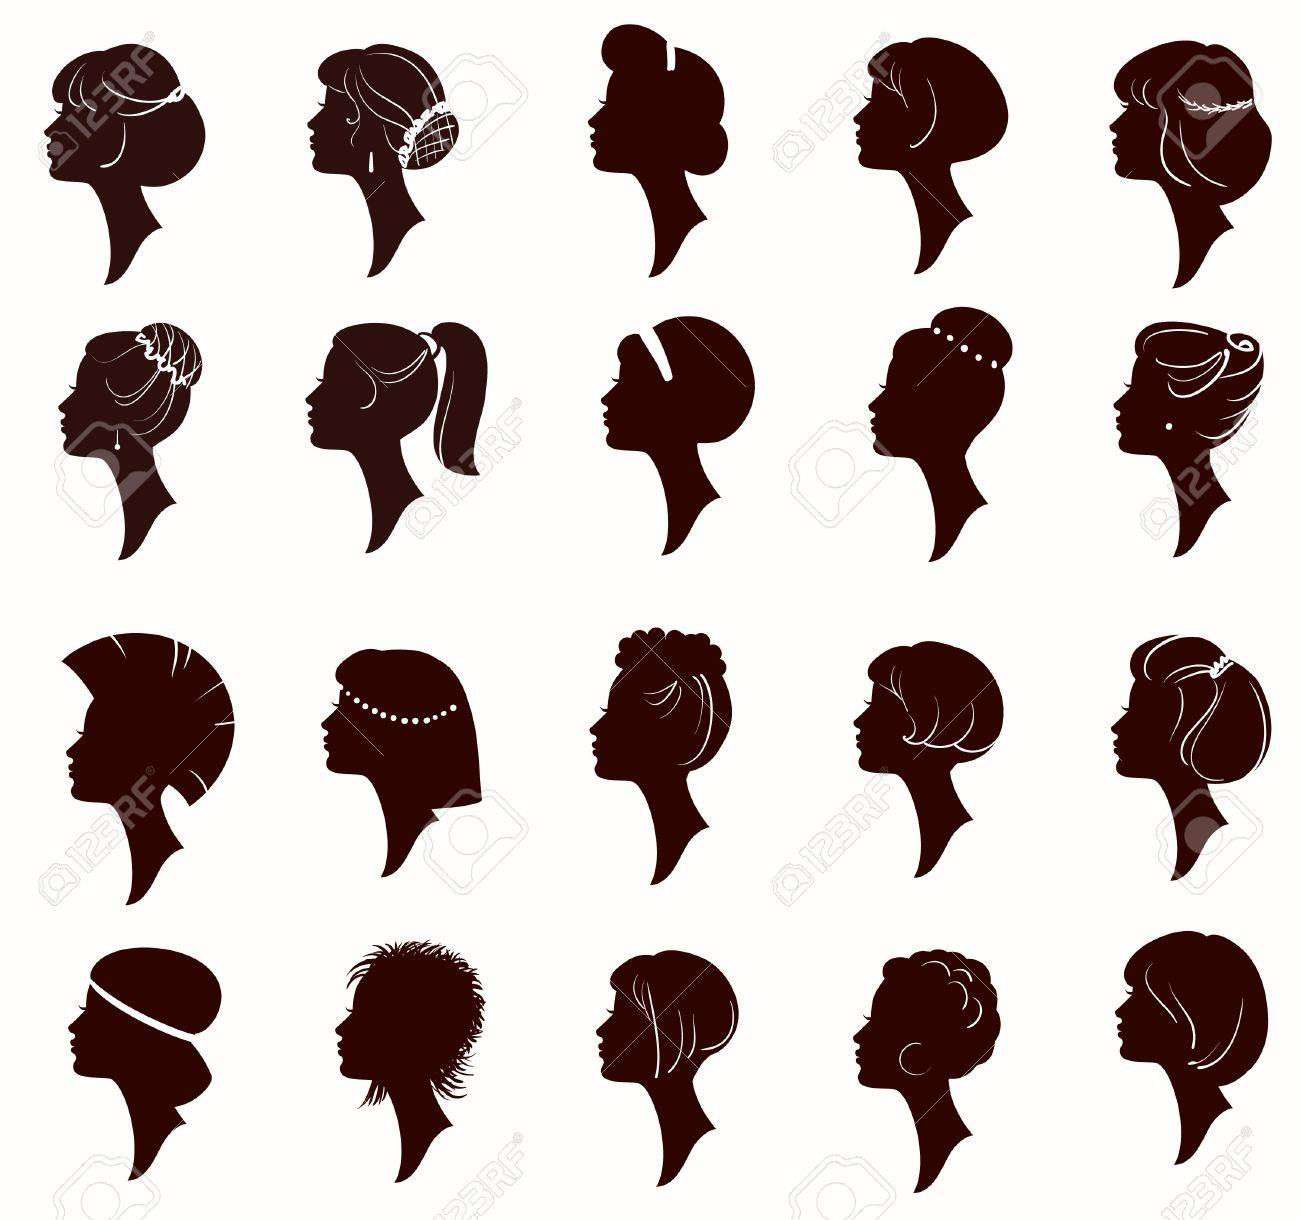 vector set of silhouette portrait of beautiful woman with